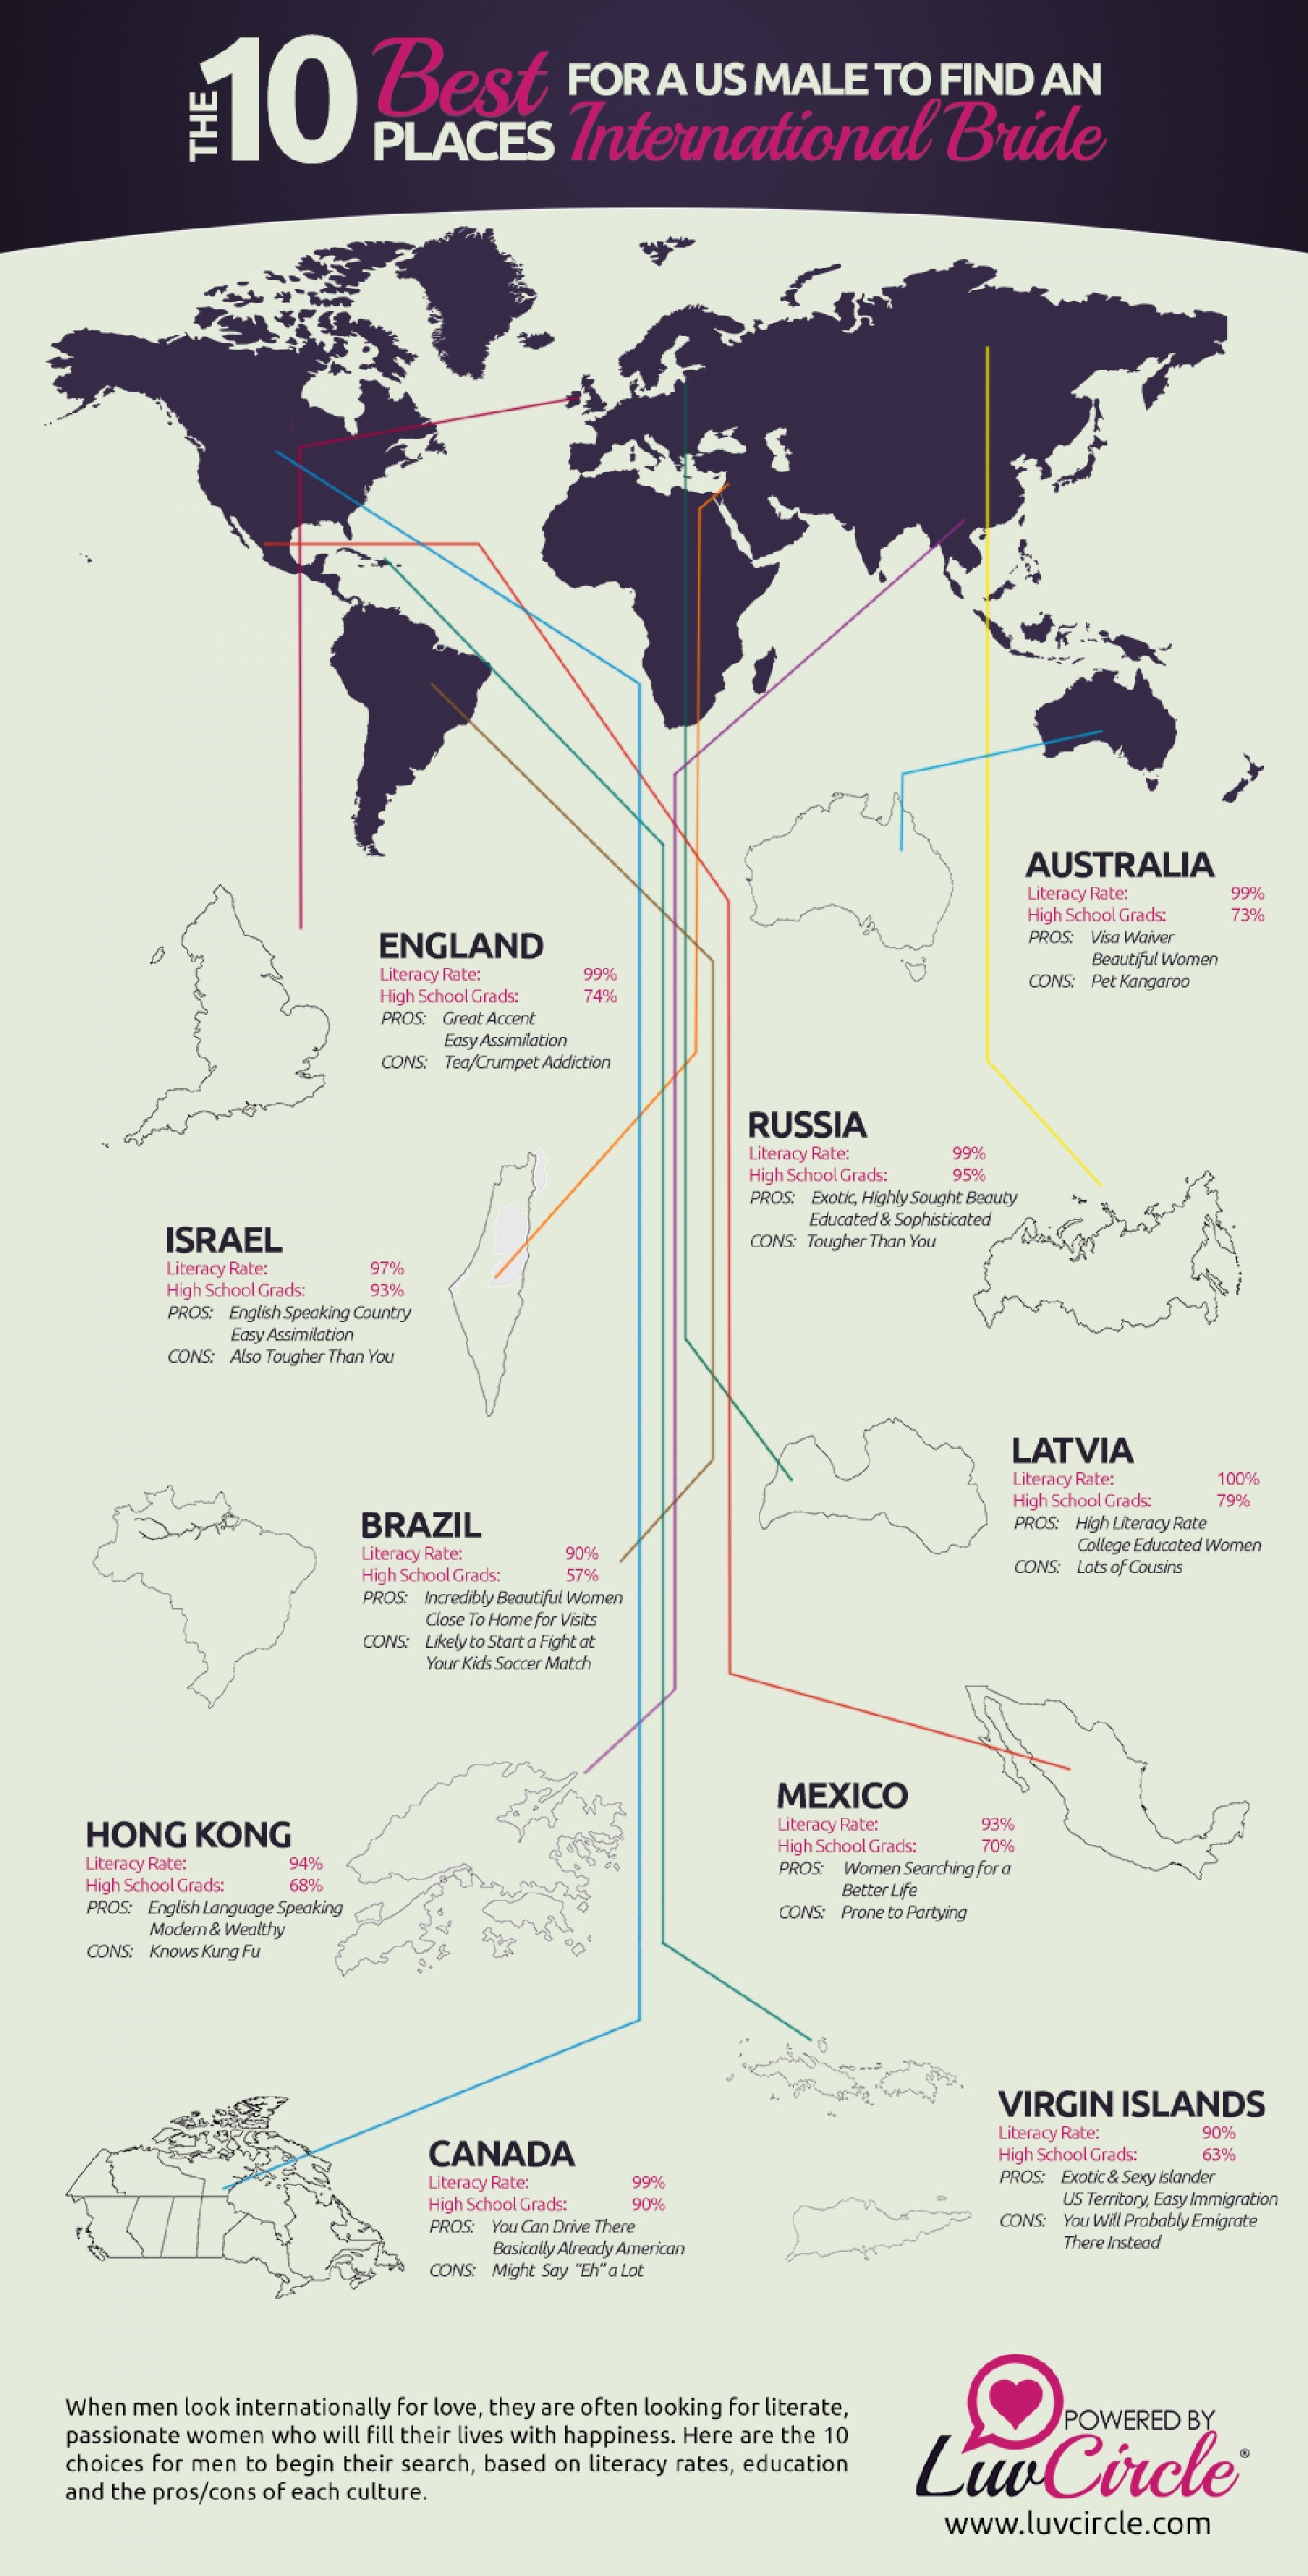 10 Best Places For a US Male To Find An International Bride Infographic